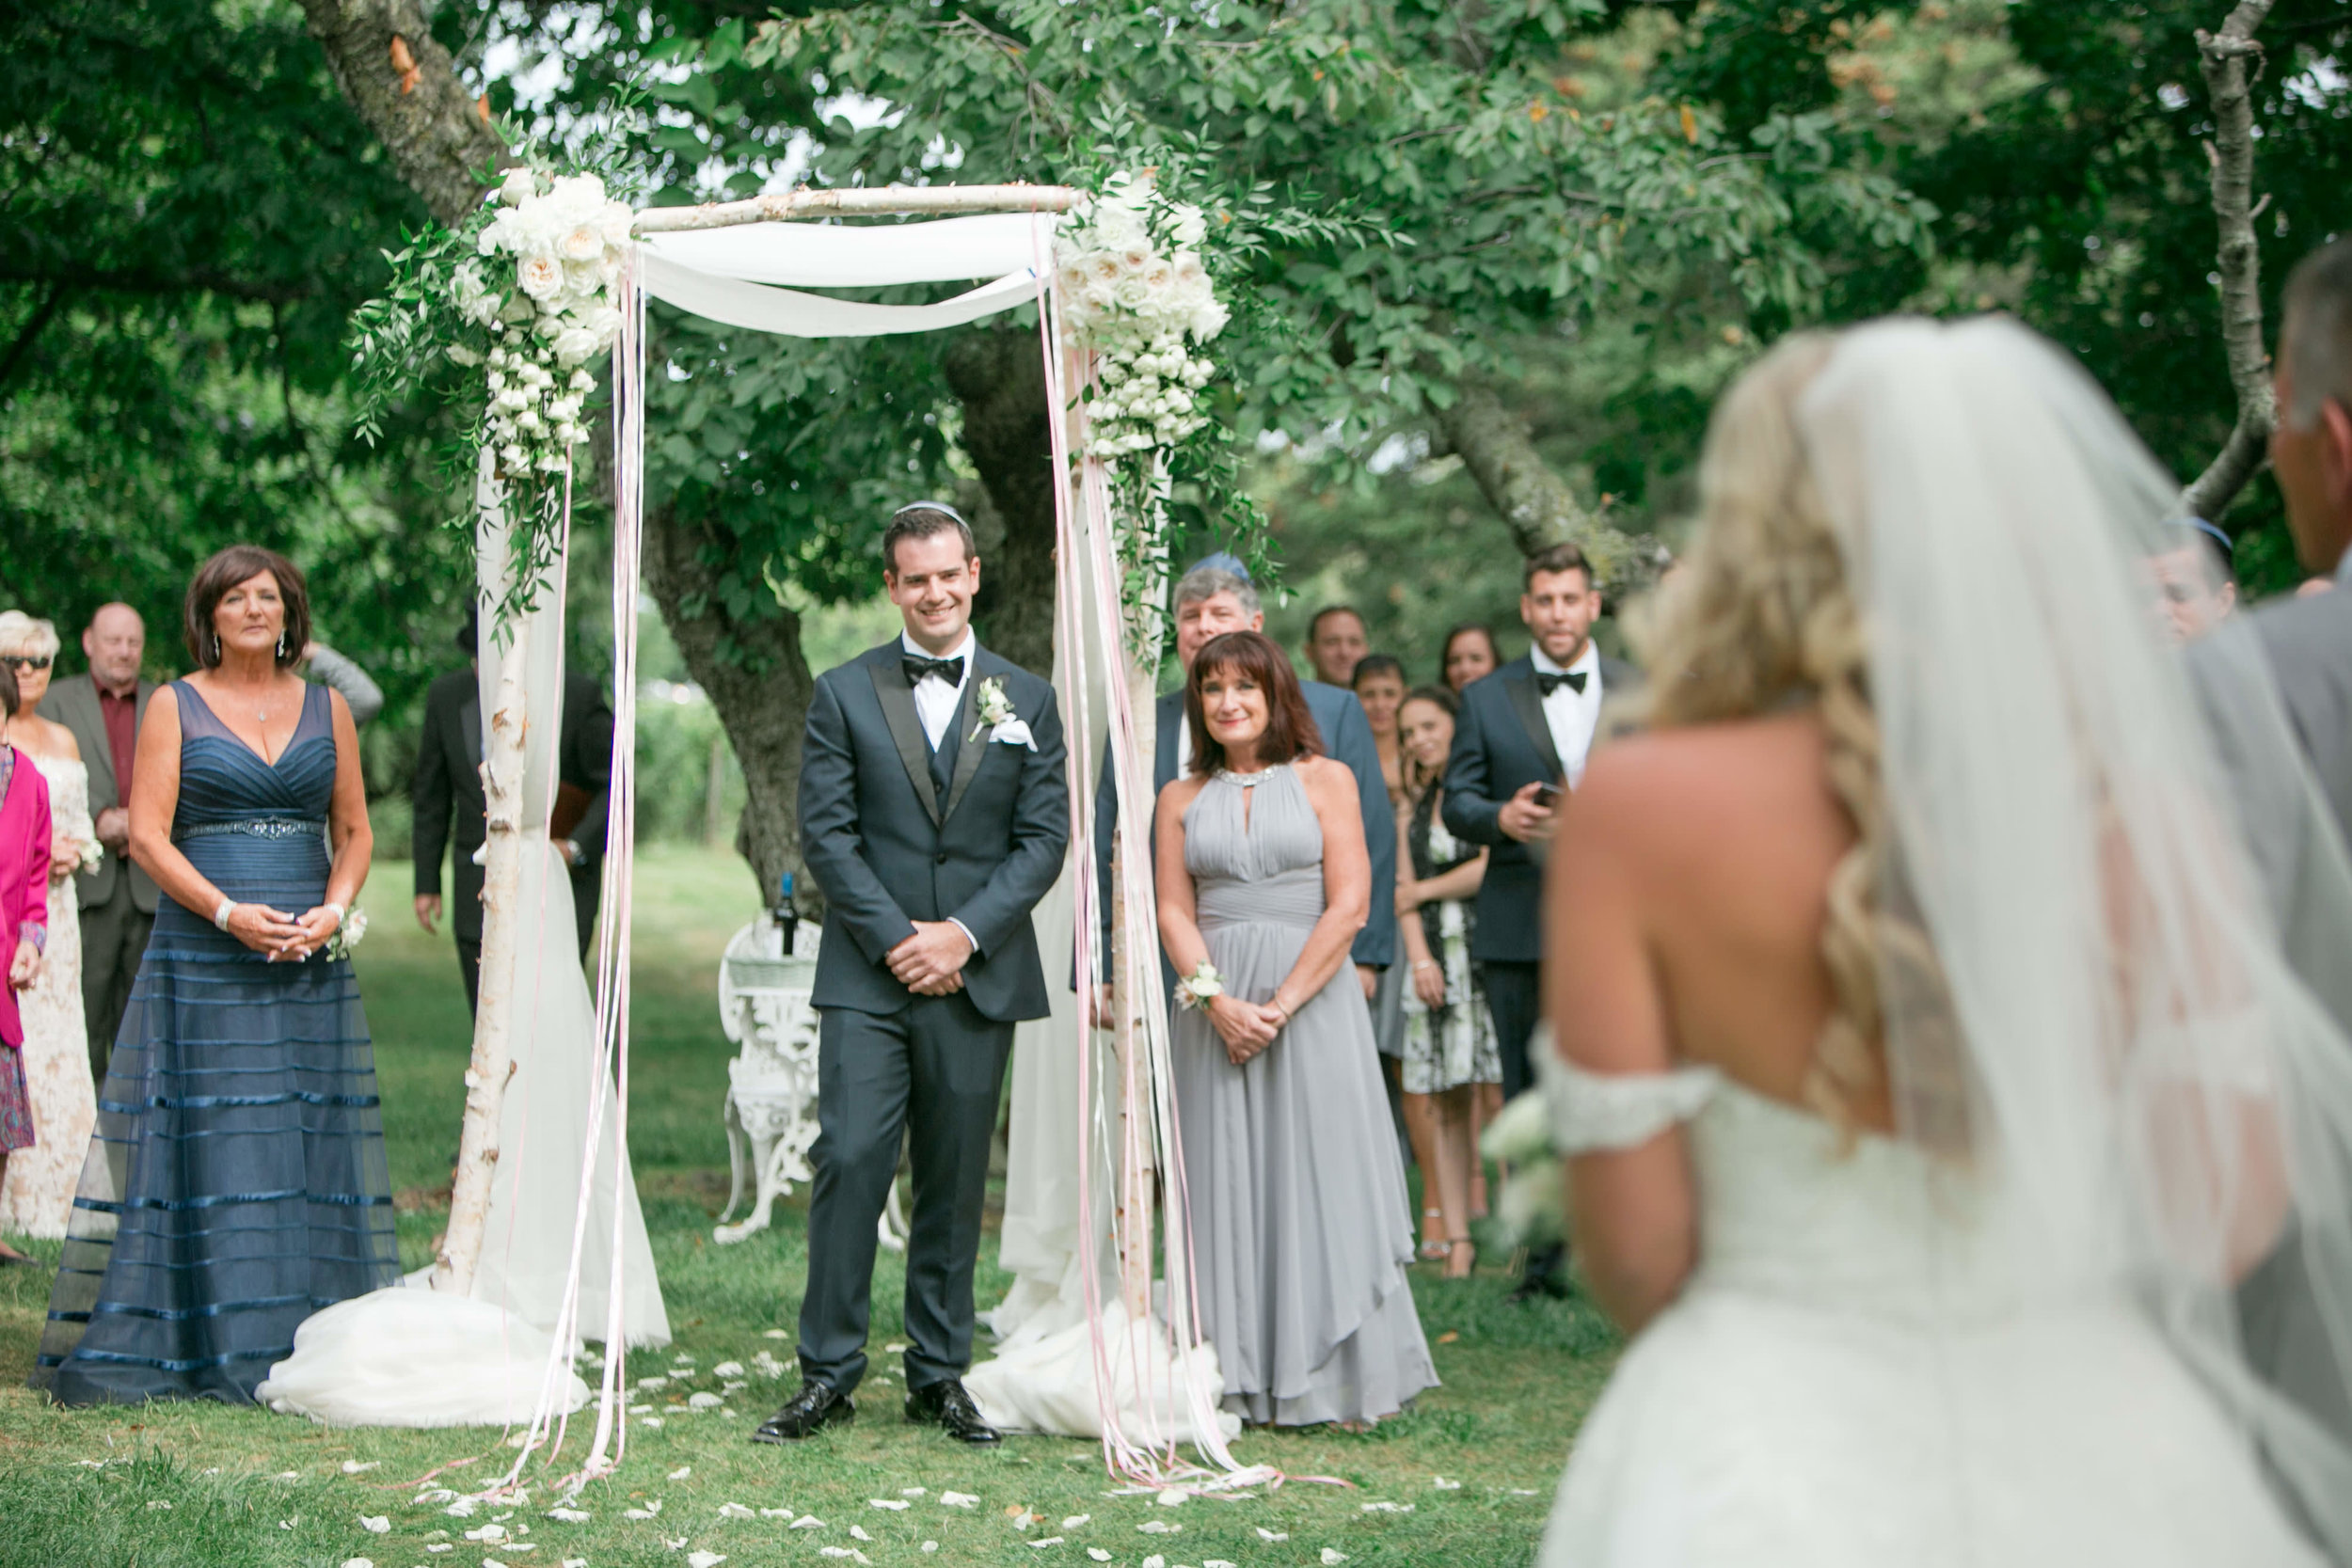 Ashley___Zac___Daniel_Ricci_Weddings___High_Res._Finals_296.jpg